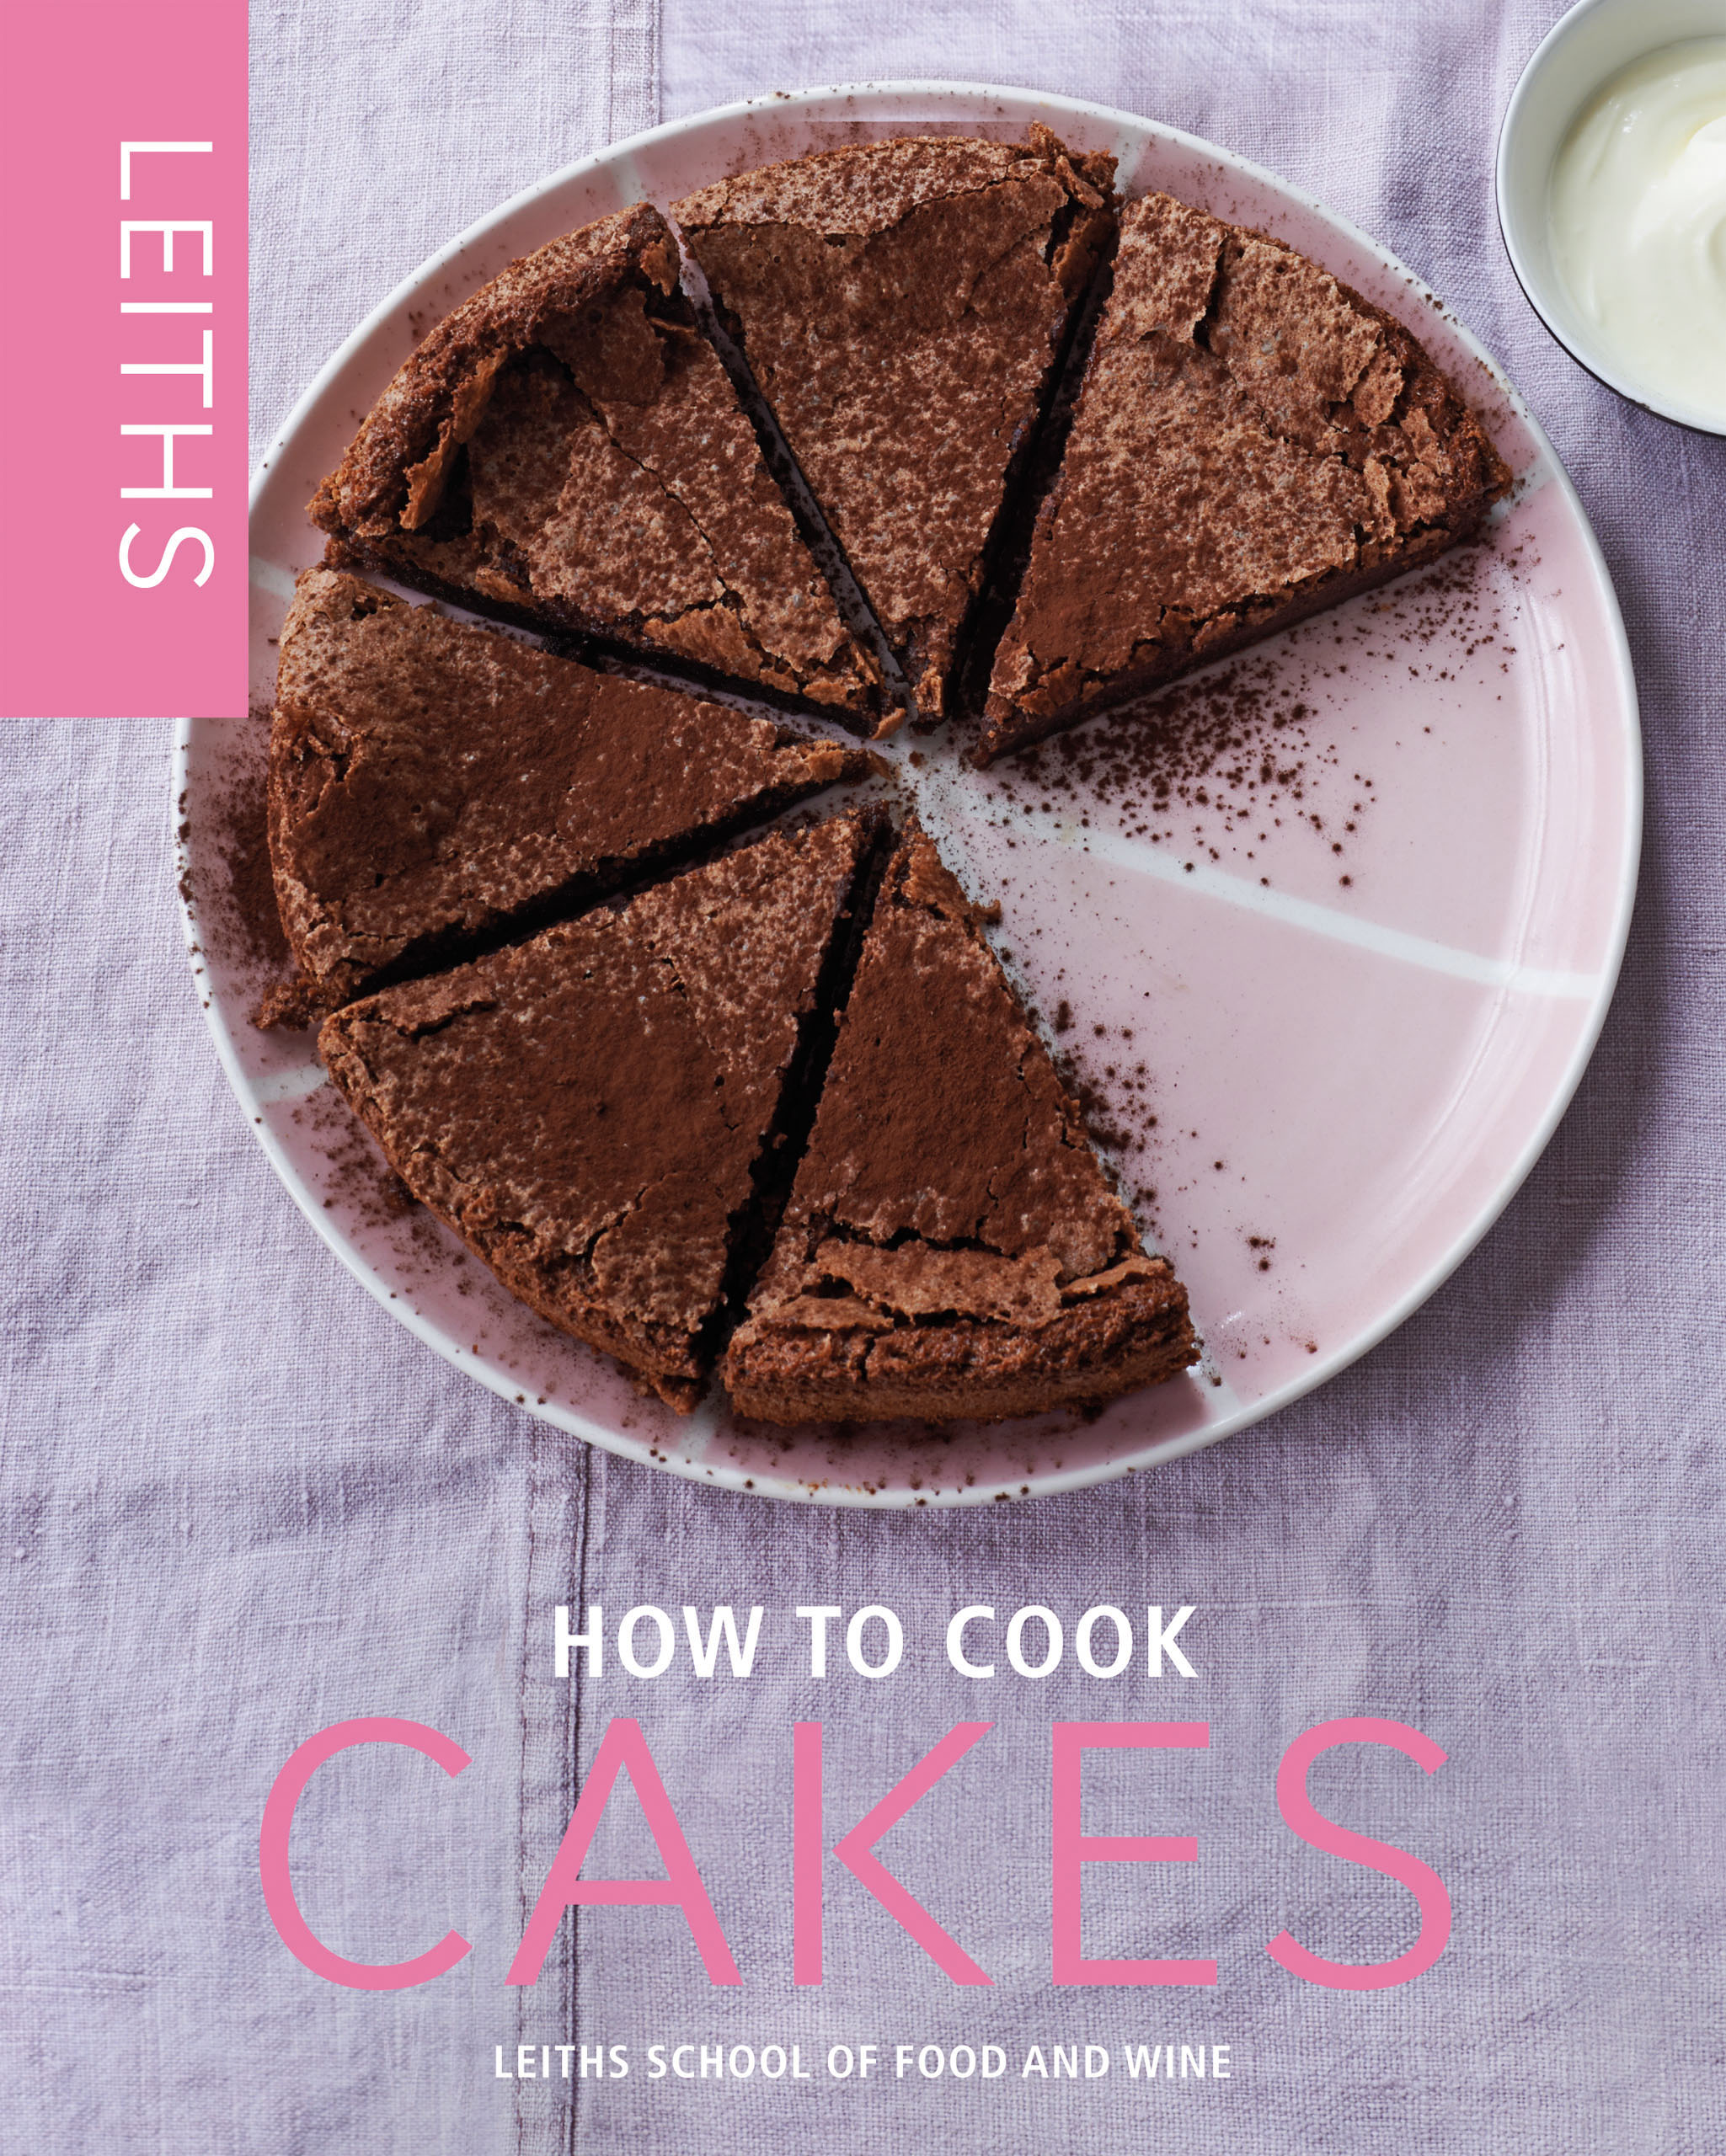 How to Cook Cakes